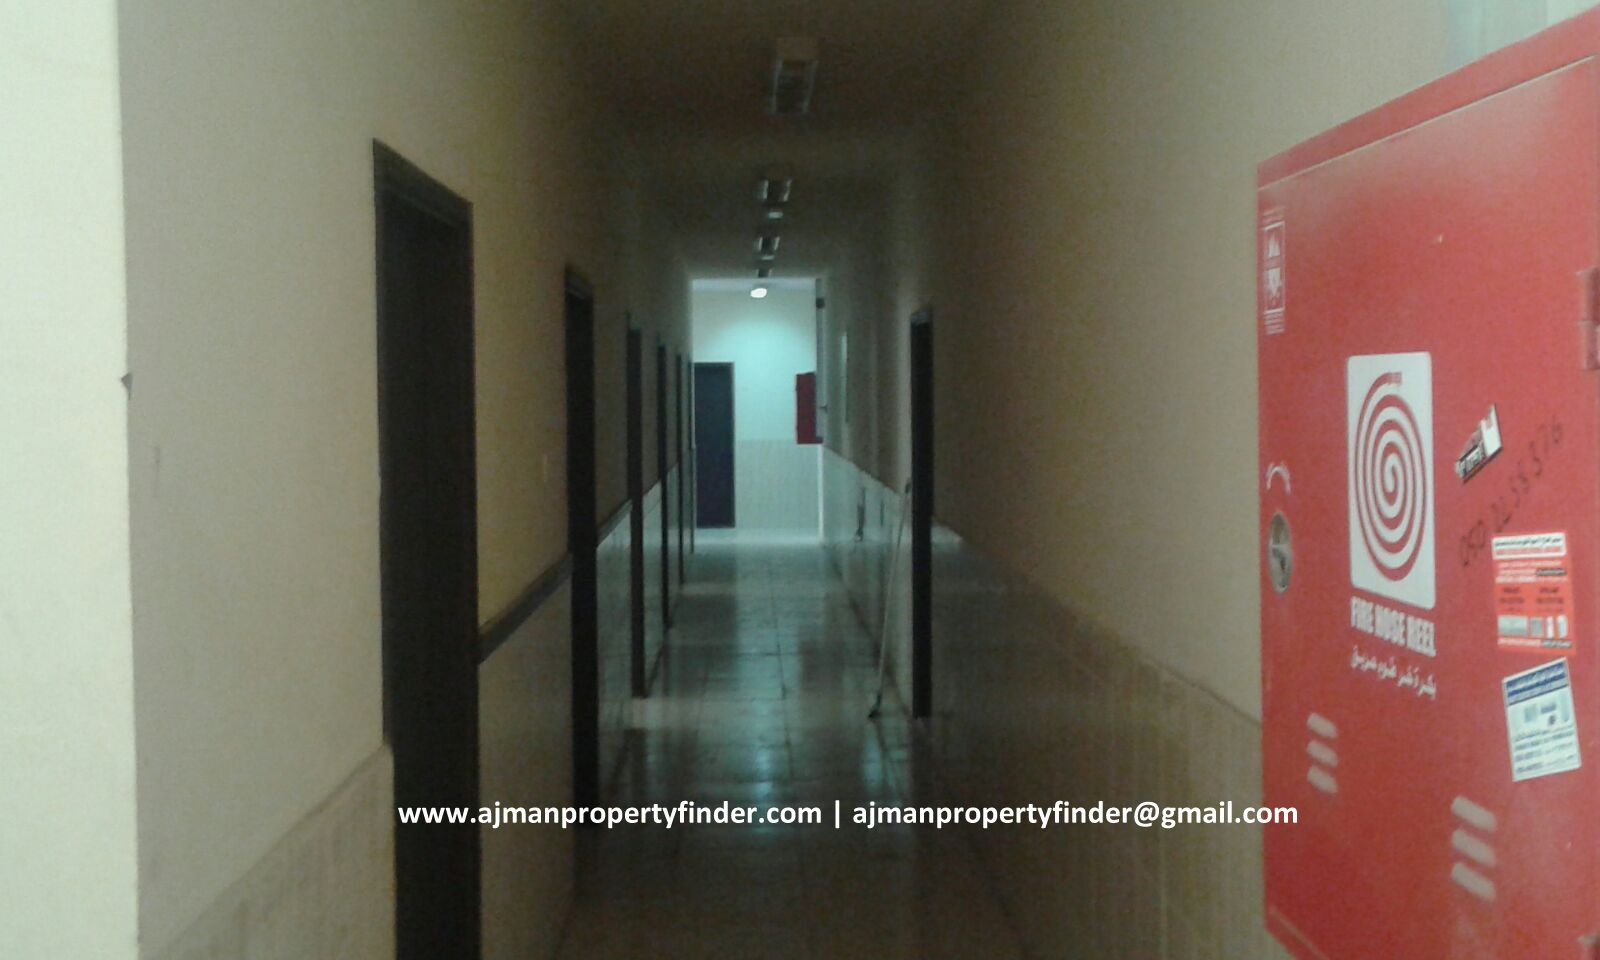 Labour Camp for Rent in Ajman | 42 Rooms, Government Electricity | Rent AED 1,200/month